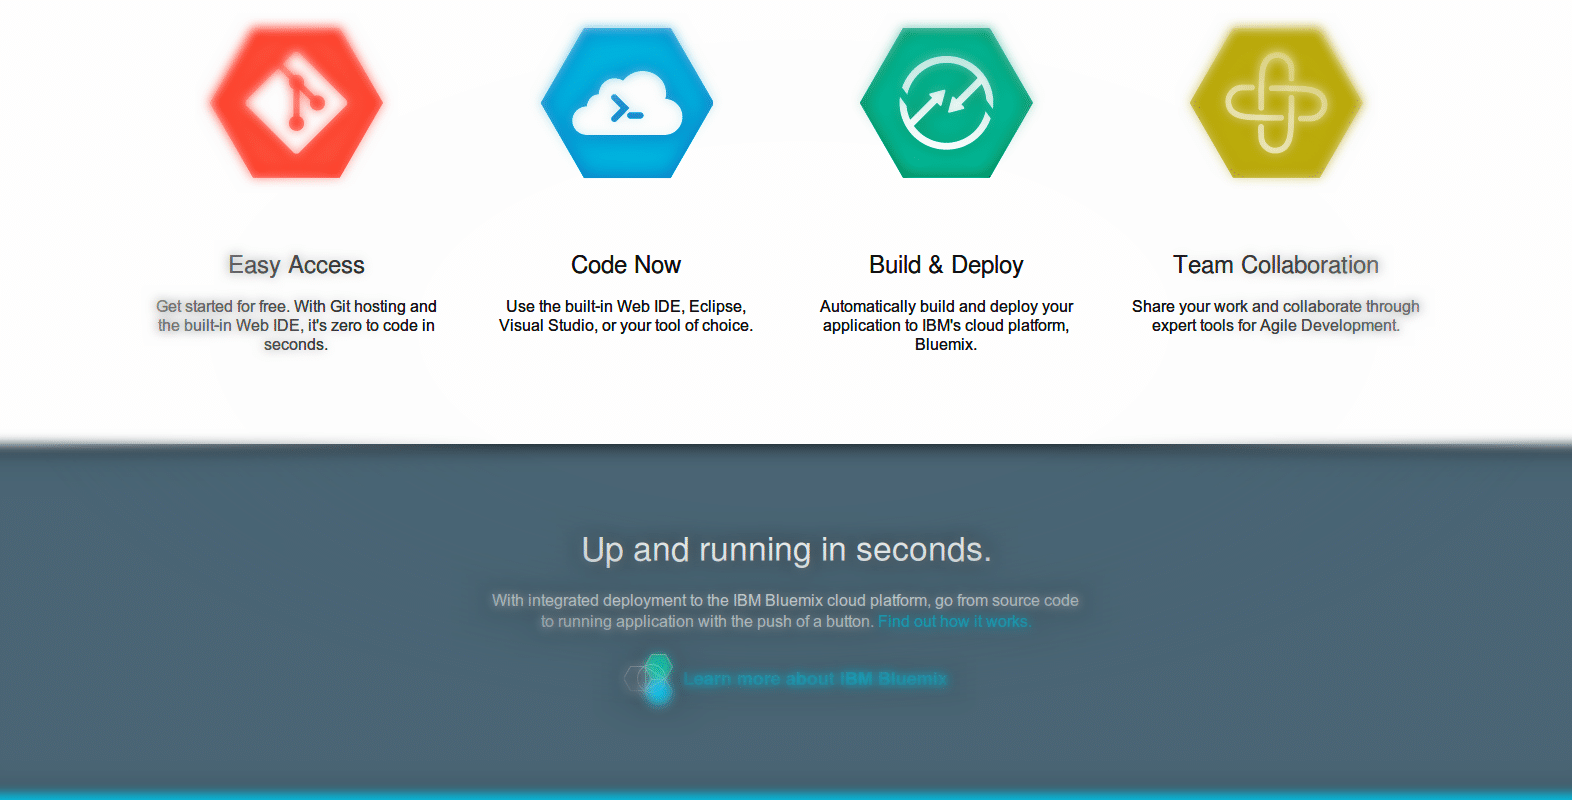 IBM Bluemix DevOps